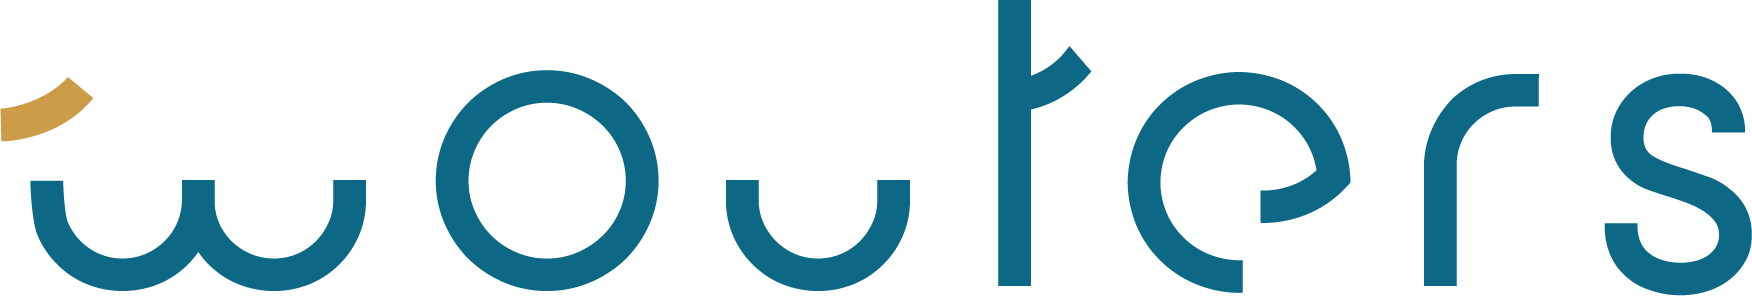 Wouters_logo_letters_cut.png